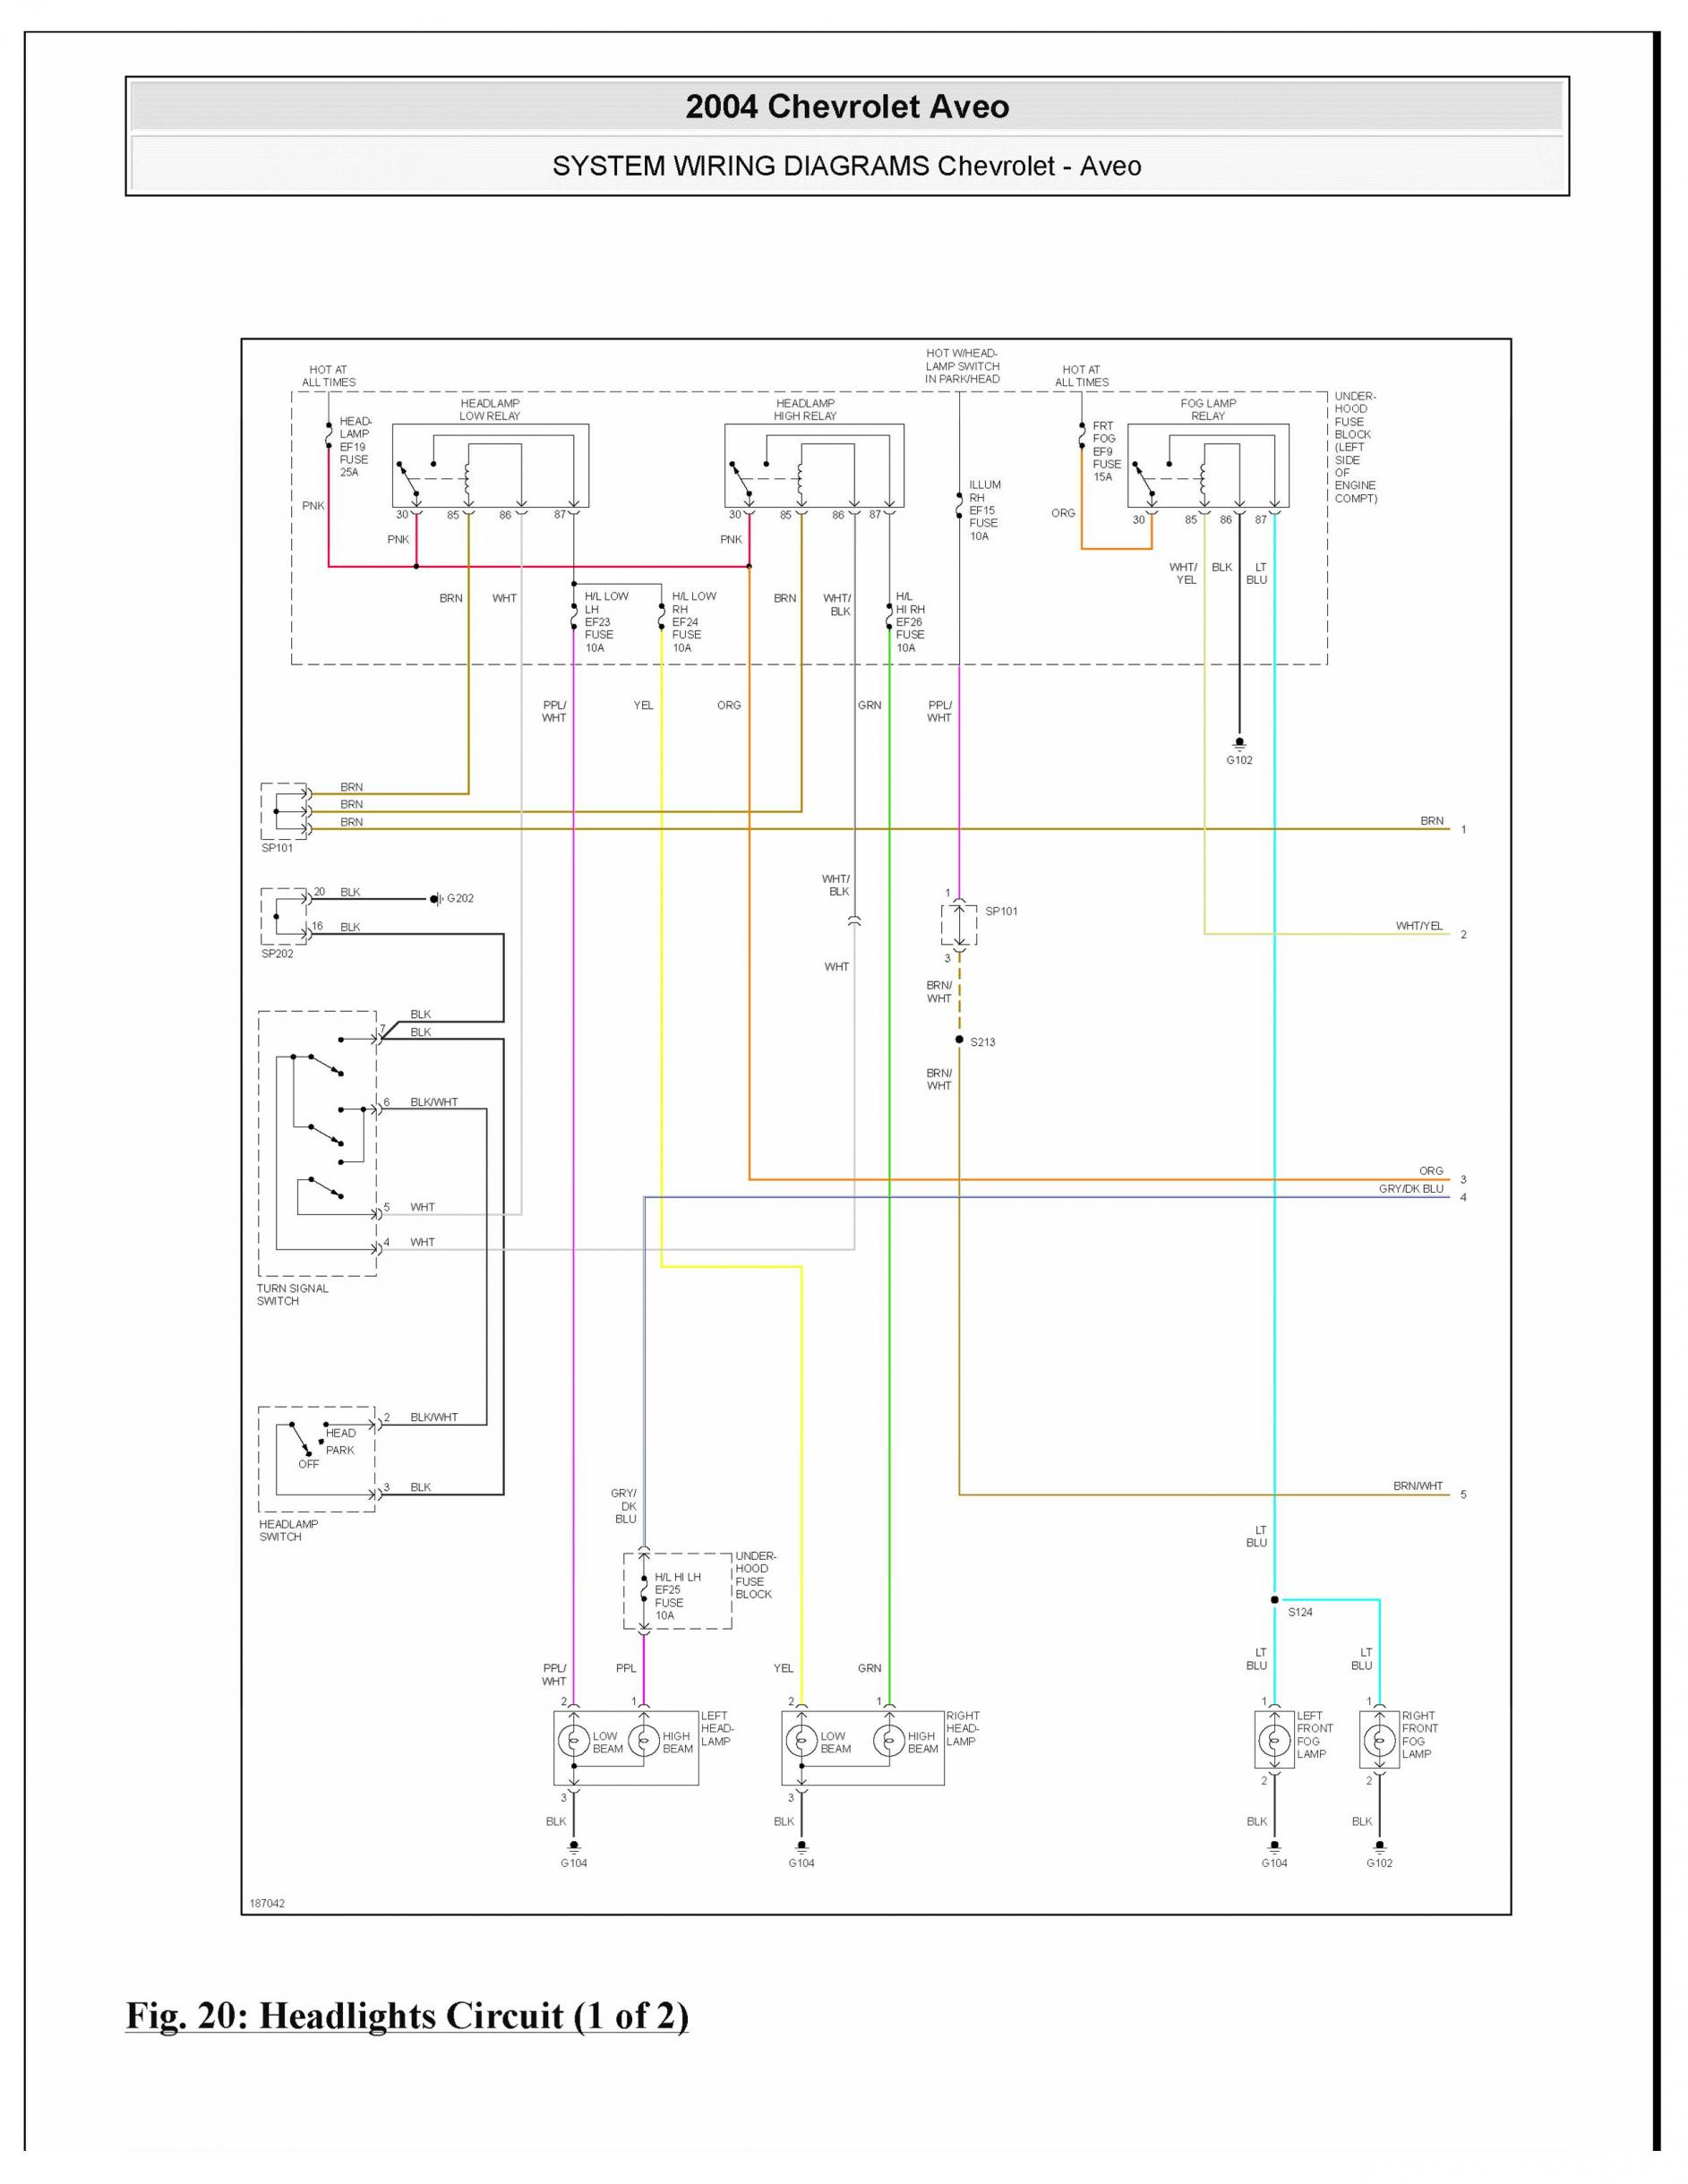 no headlights can a wiring diagram headlights wiring aveo page 001 jpg views 1080 size